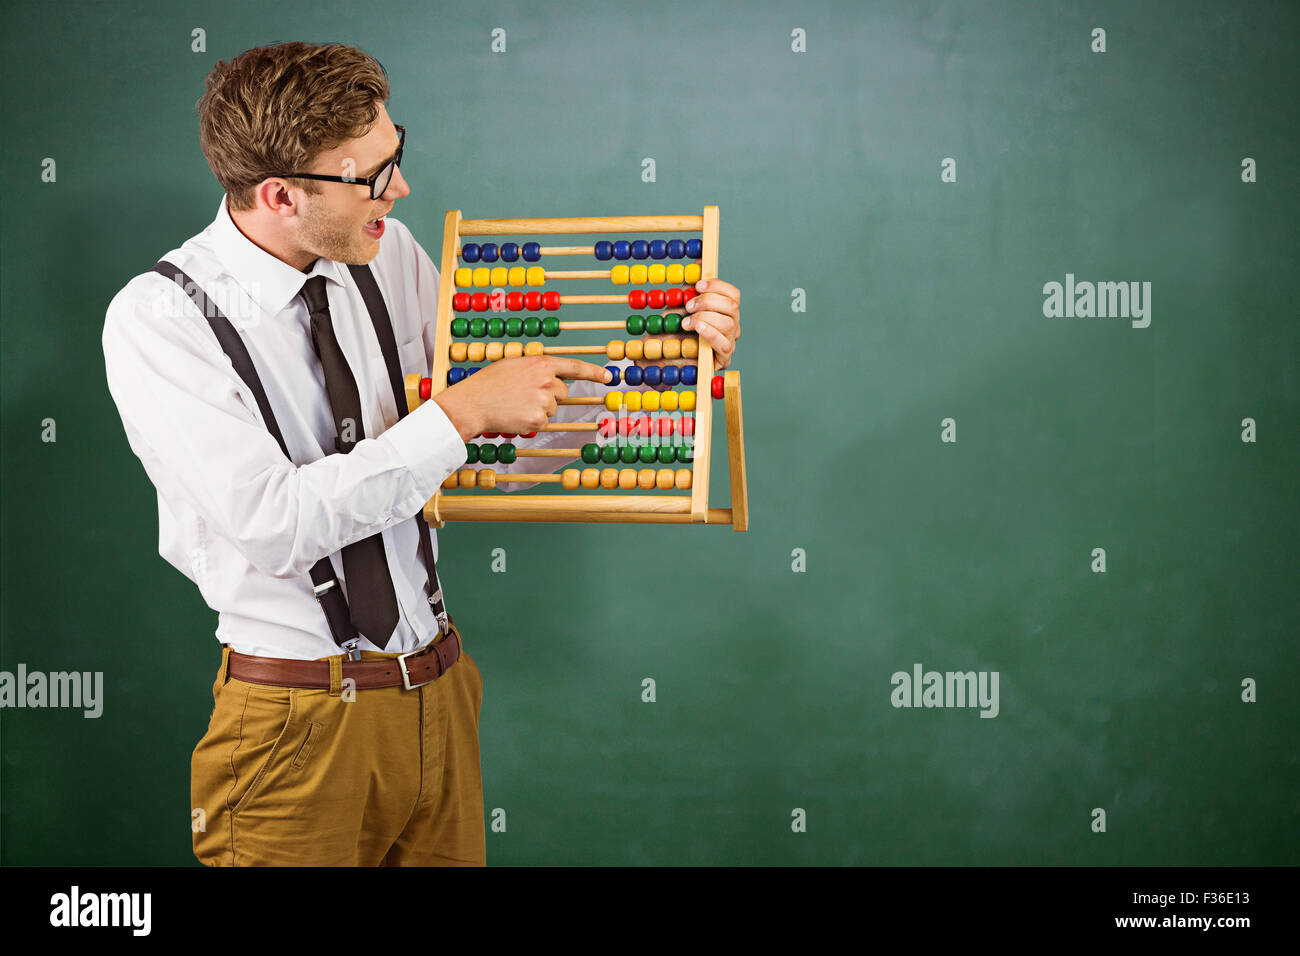 Composite image of geeky businessman using an abacus - Stock Image